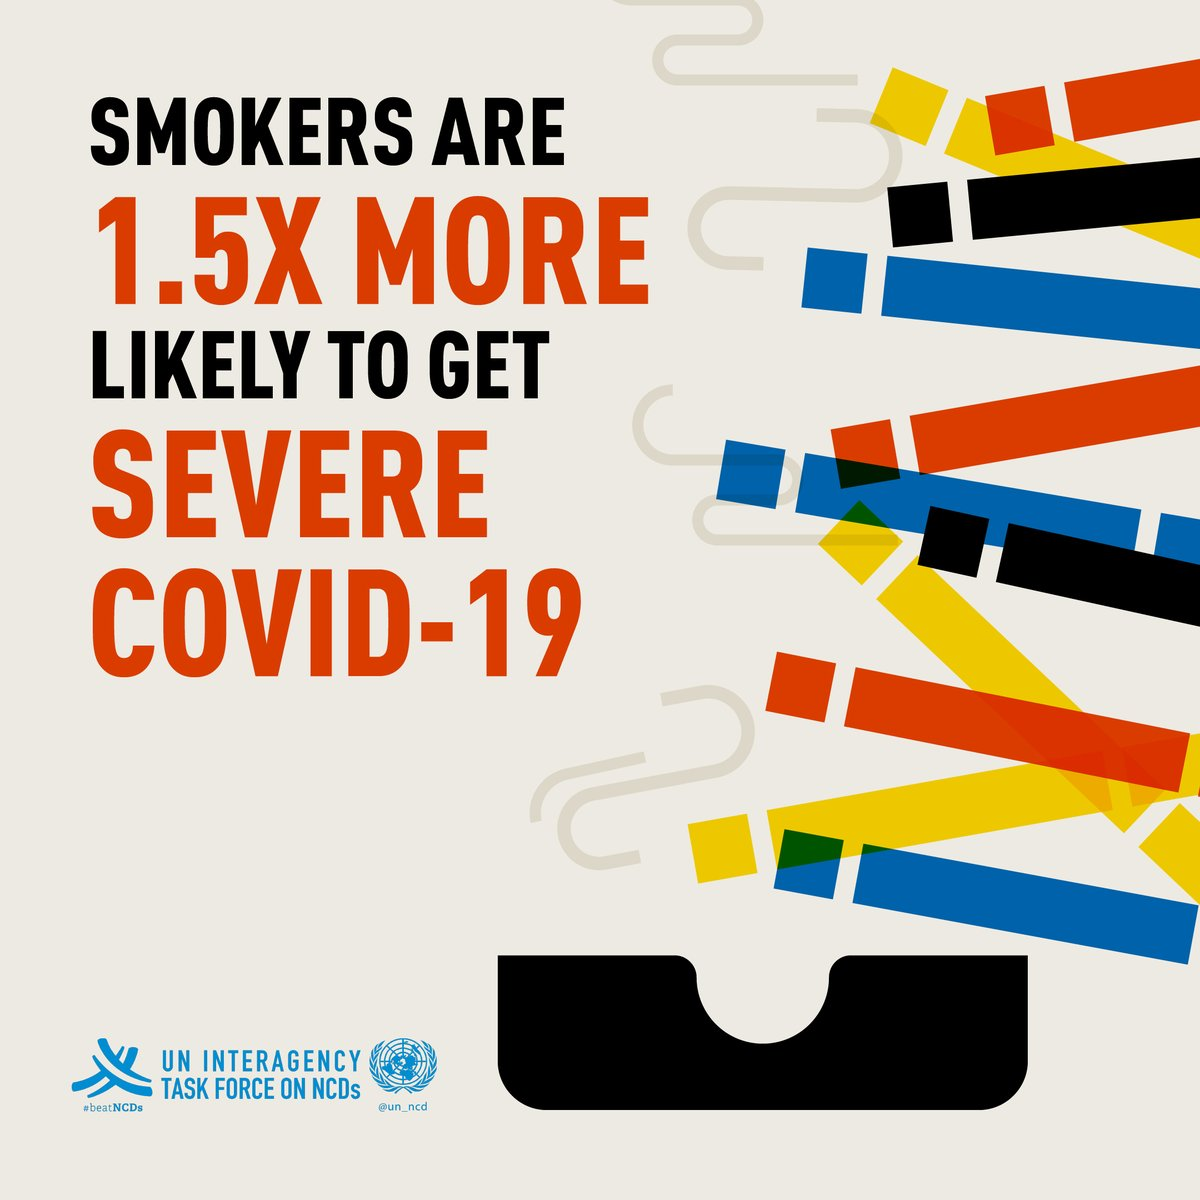 Tobacco use causes high blood pressure & heart disease, which can increase the risk of developing severe #COVID19.  More details 👉https://t.co/ezRQnvdnL1 https://t.co/8SCKxSh2lB